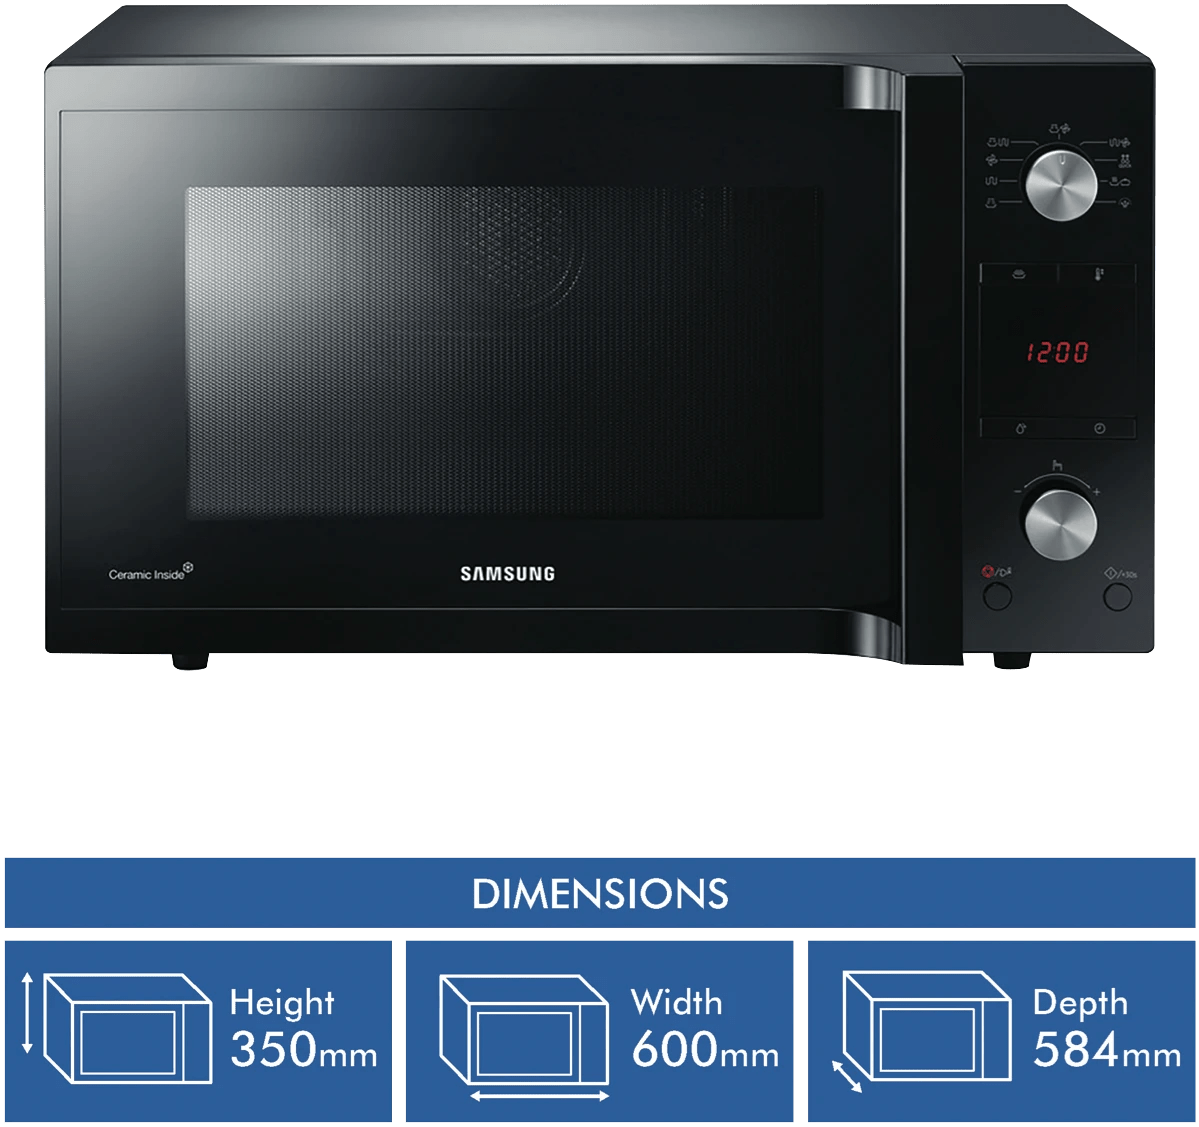 samsungfamily size 45l convection mwo